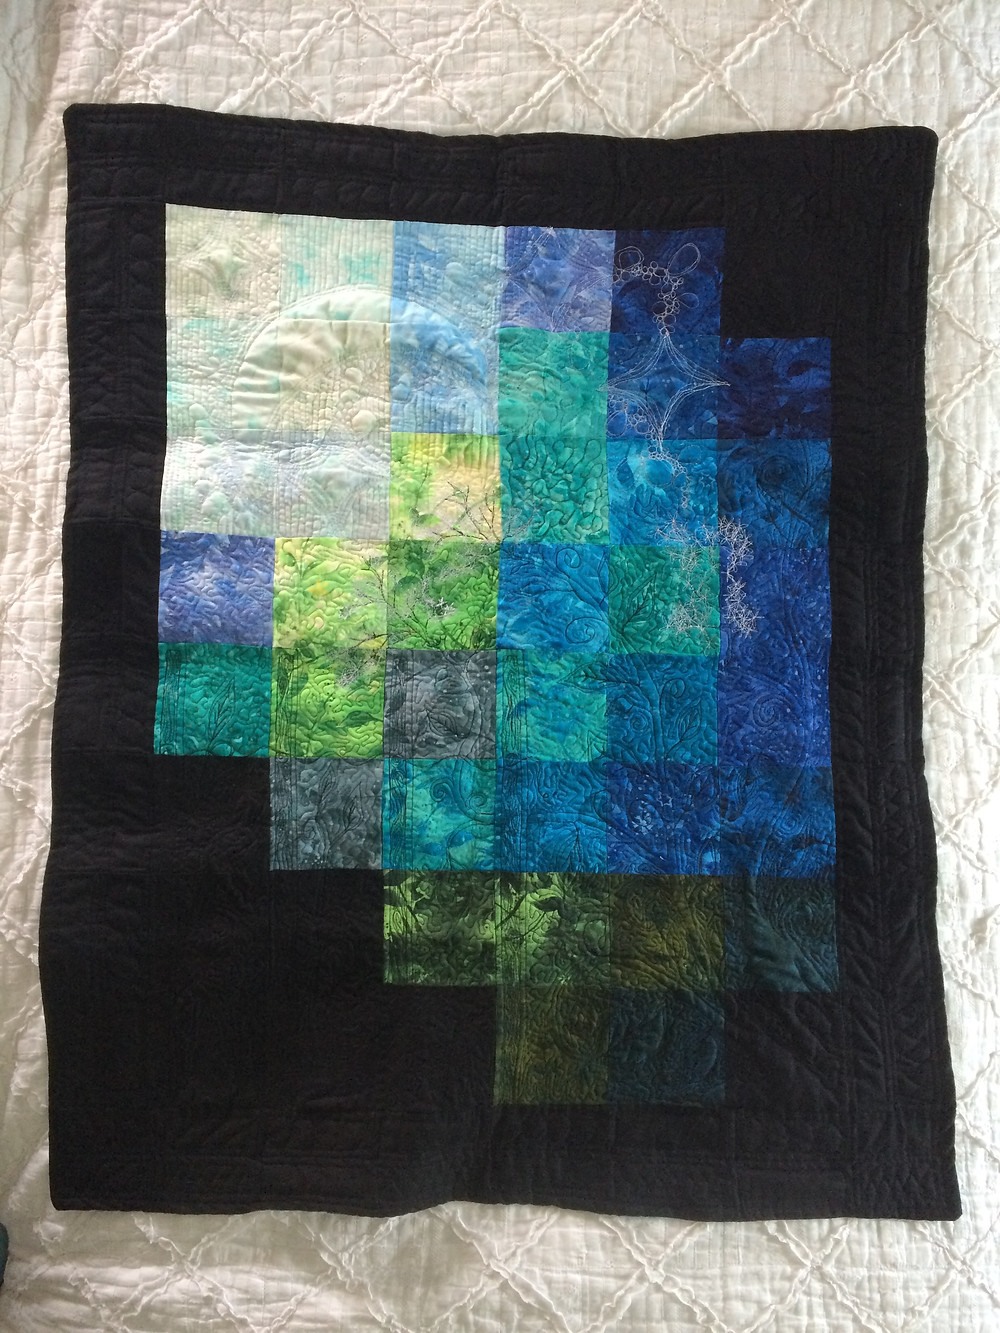 The whole quilt top